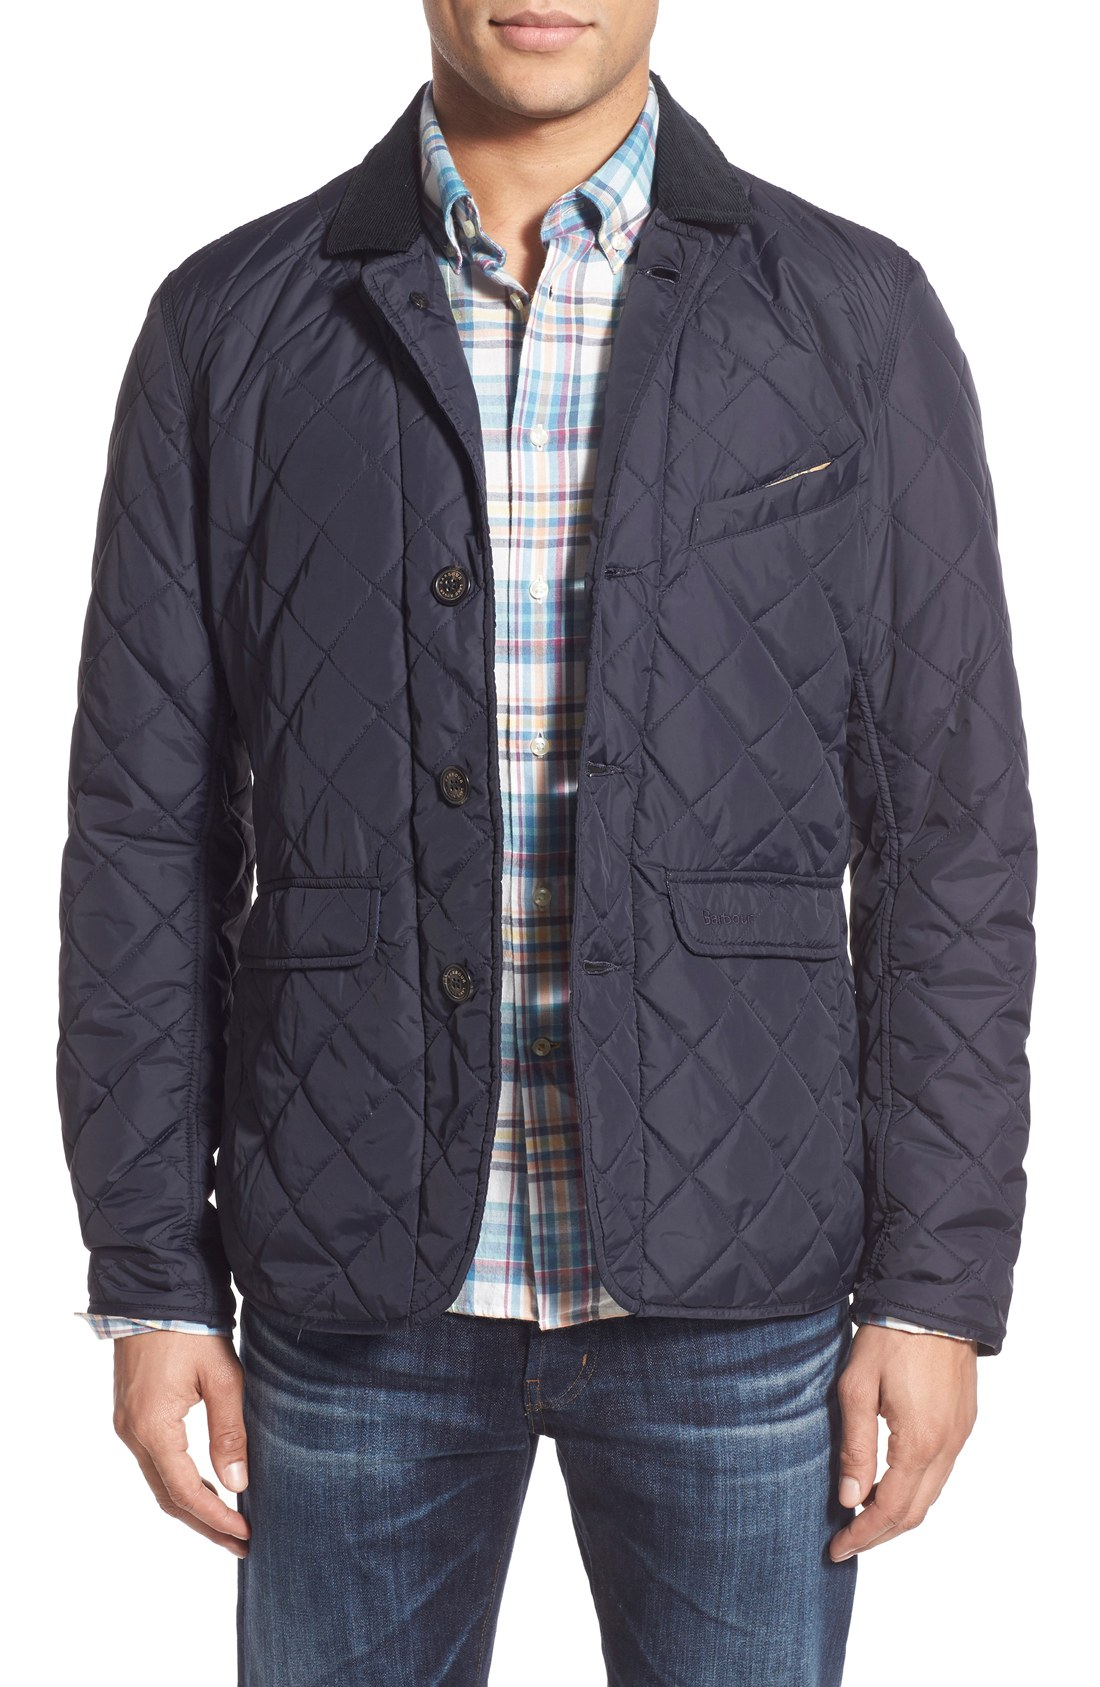 Barbour 'Beauly' Tailored Fit Quilted Jacket with Corduroy Collar.